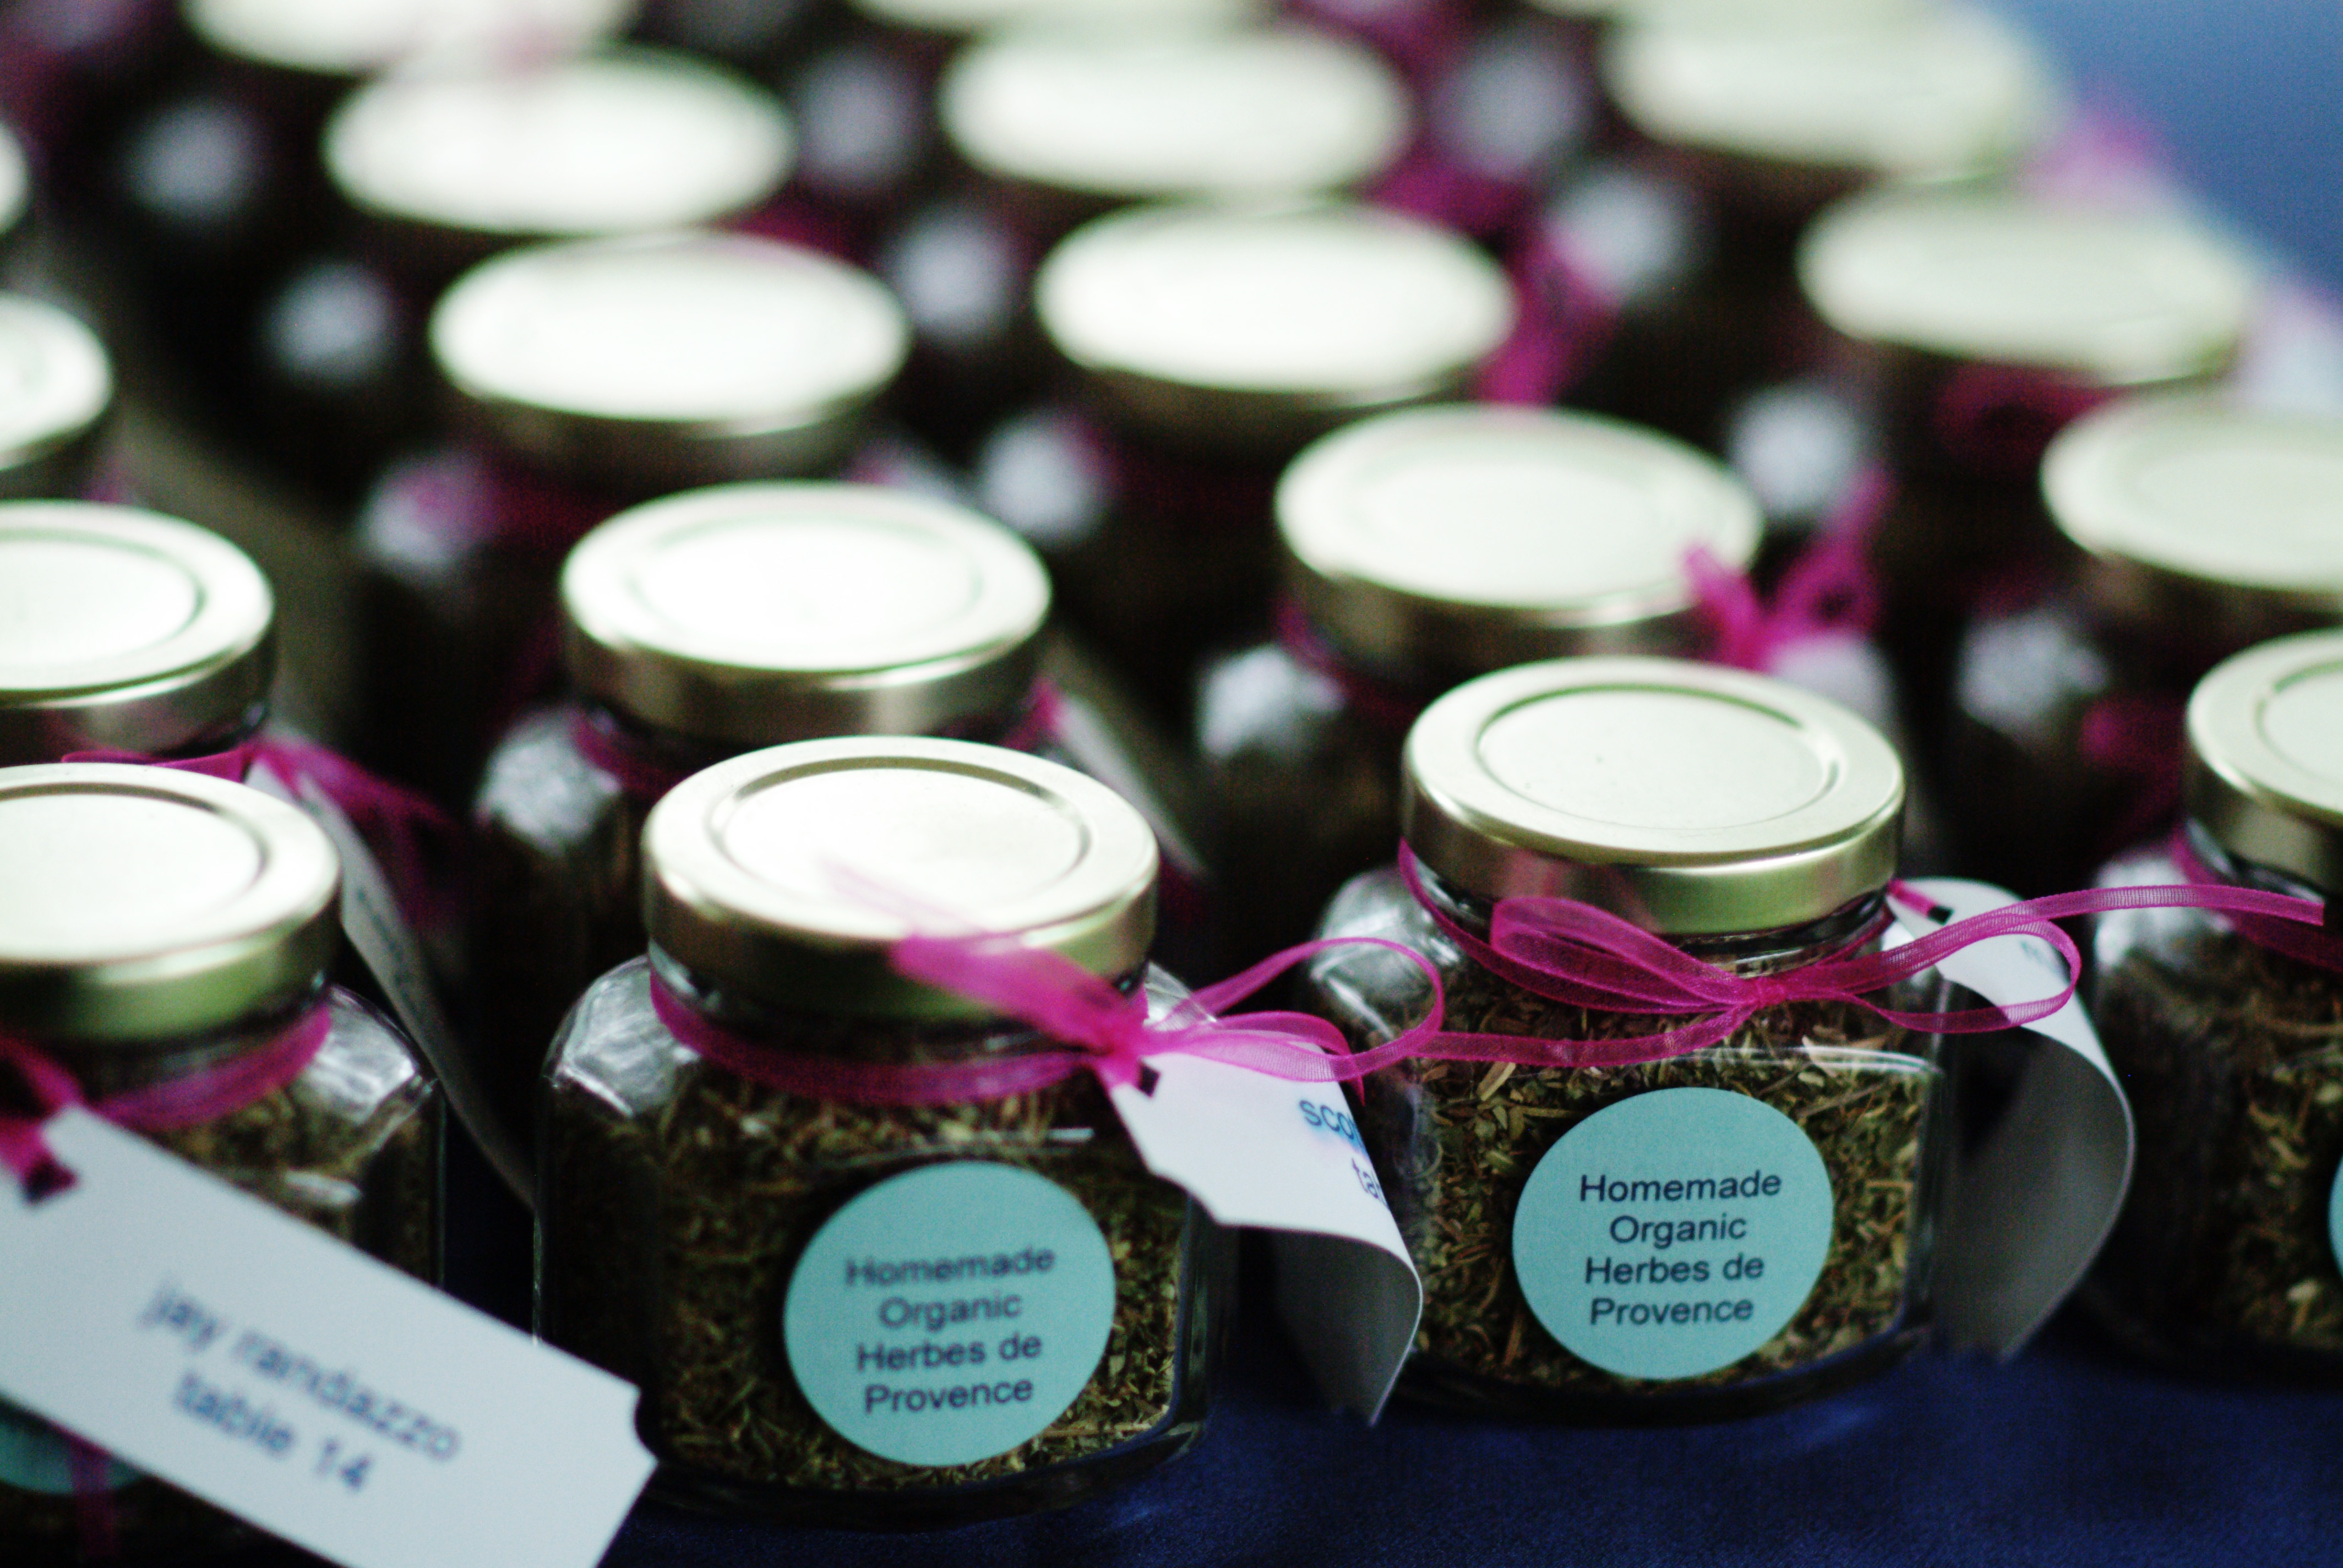 Making Your Boston Wedding Stand Out From The Crowd Handmade (DIY) Wedding Favors